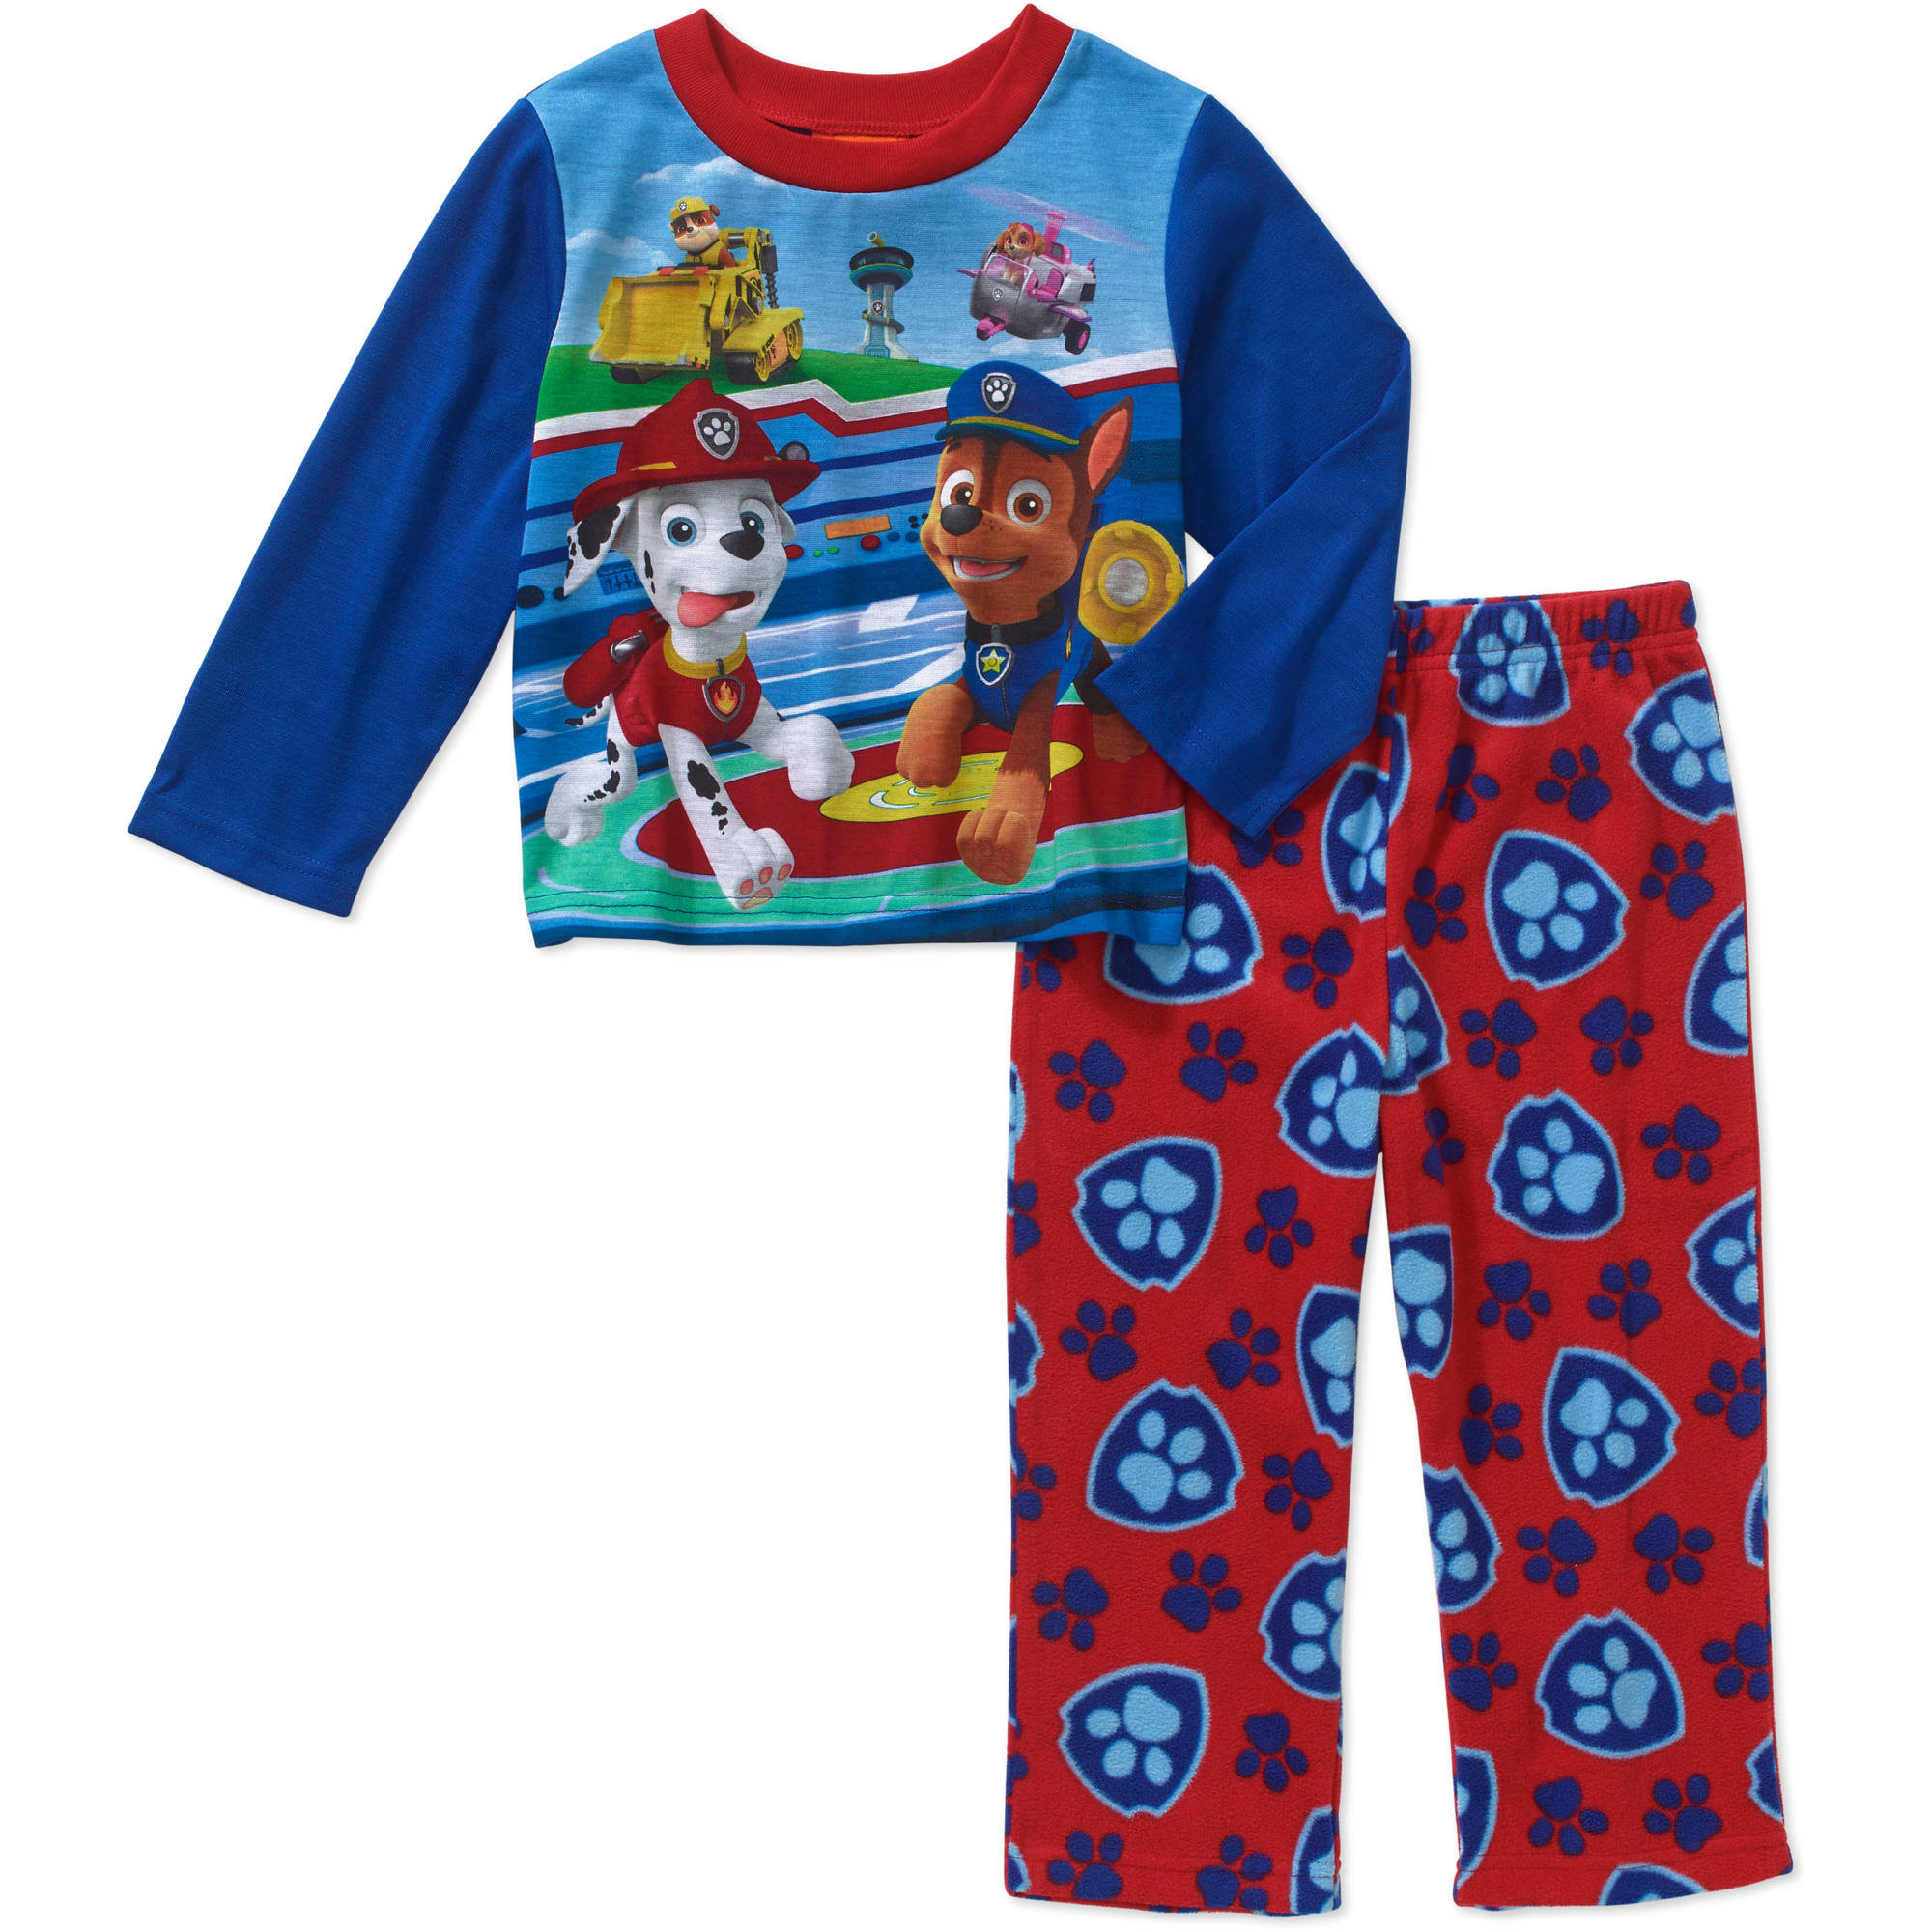 Paw Patrol Toddler Boys' Long Sleeve Top with Fleece Pants Pajama 2 Piece Set